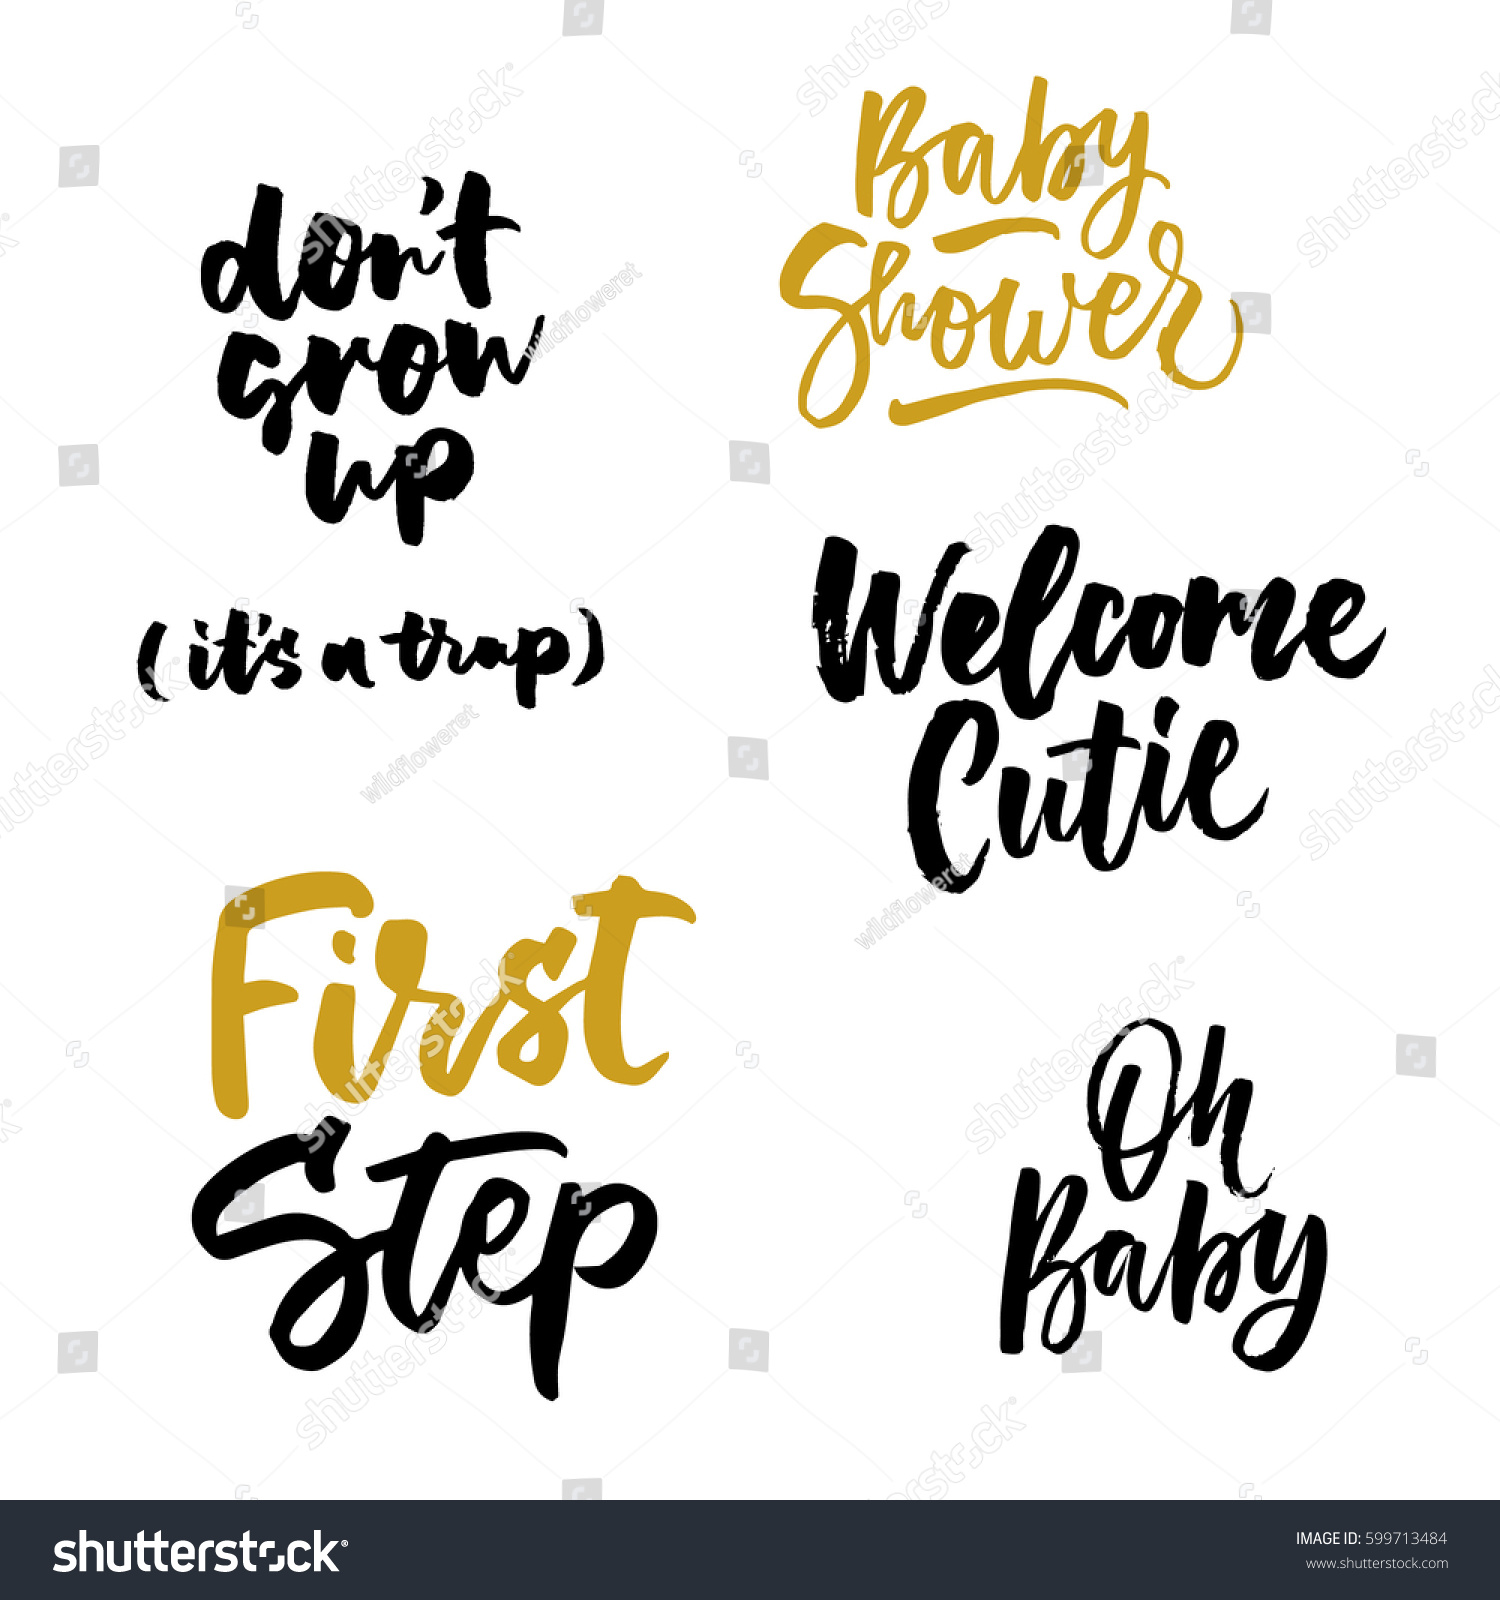 Grow Up Quotes Dont Grow Up Trap Oh Baby Stock Vector 599713484  Shutterstock